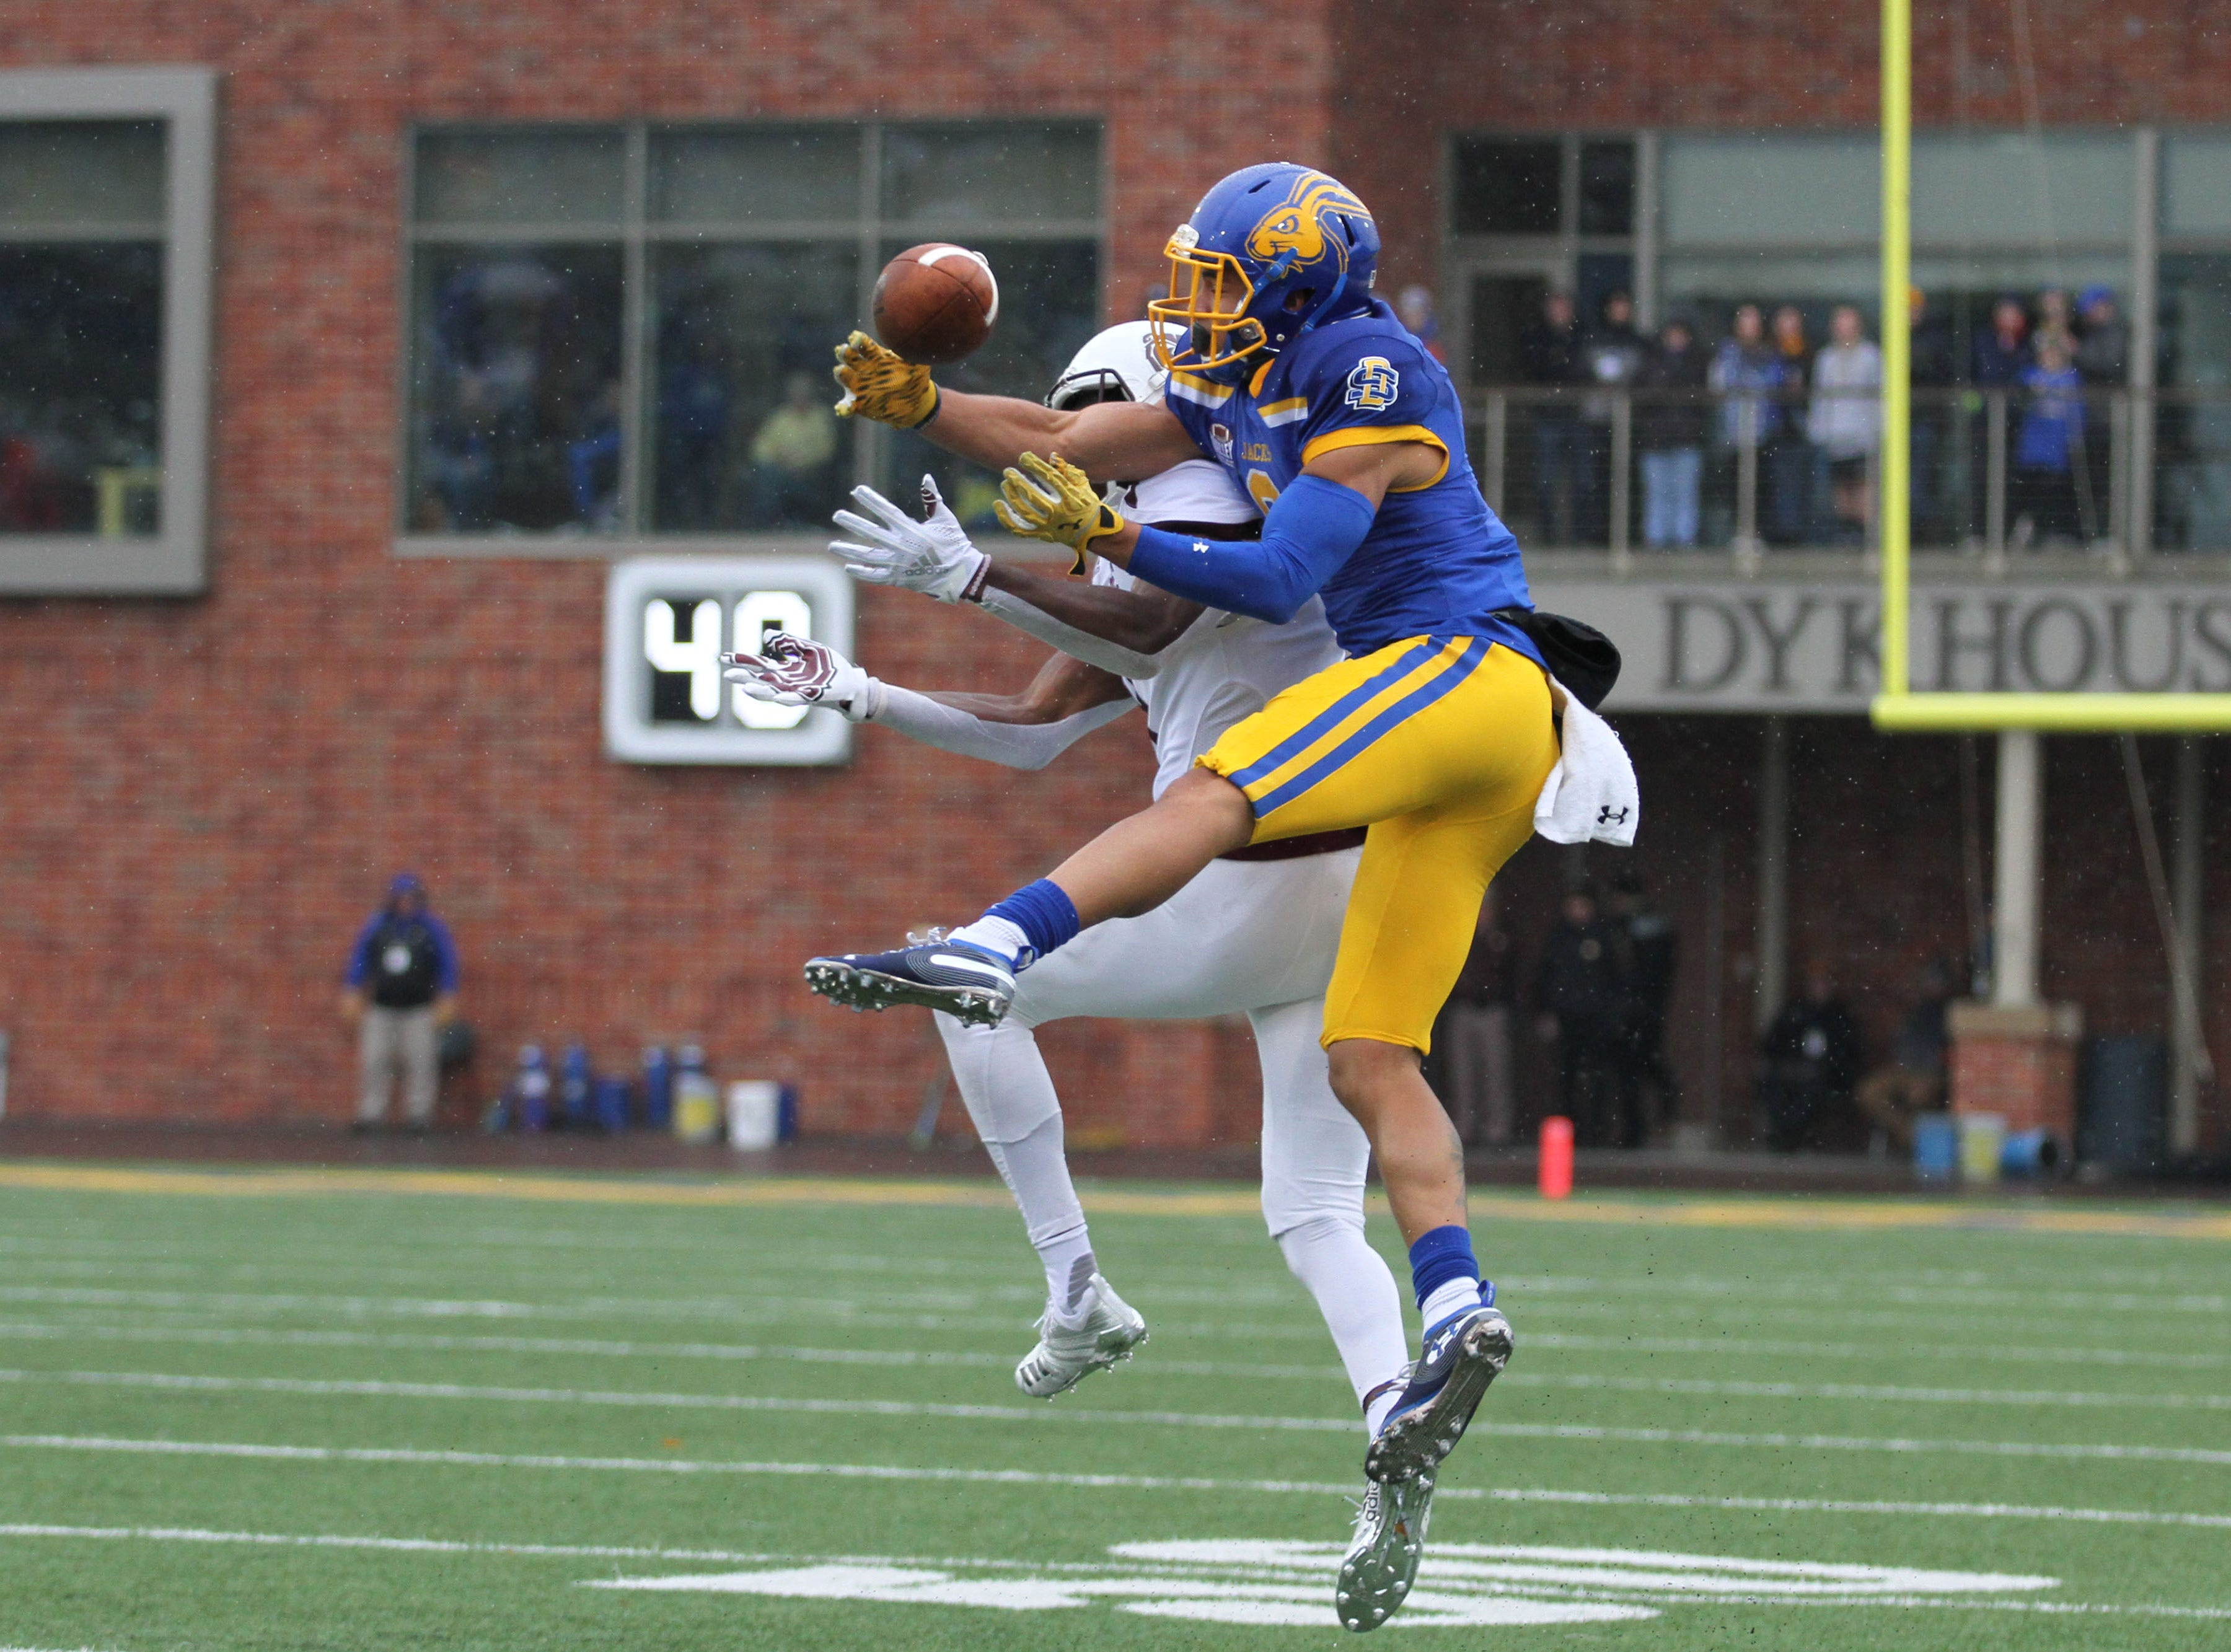 South Dakota State's Jordan Brown (9) knocks a pass away during the second quarter of the match up with Missouri State for Military Appreciatin Day Saturday afternoon at Dana J. Dykhouse Stadium in Brookings.